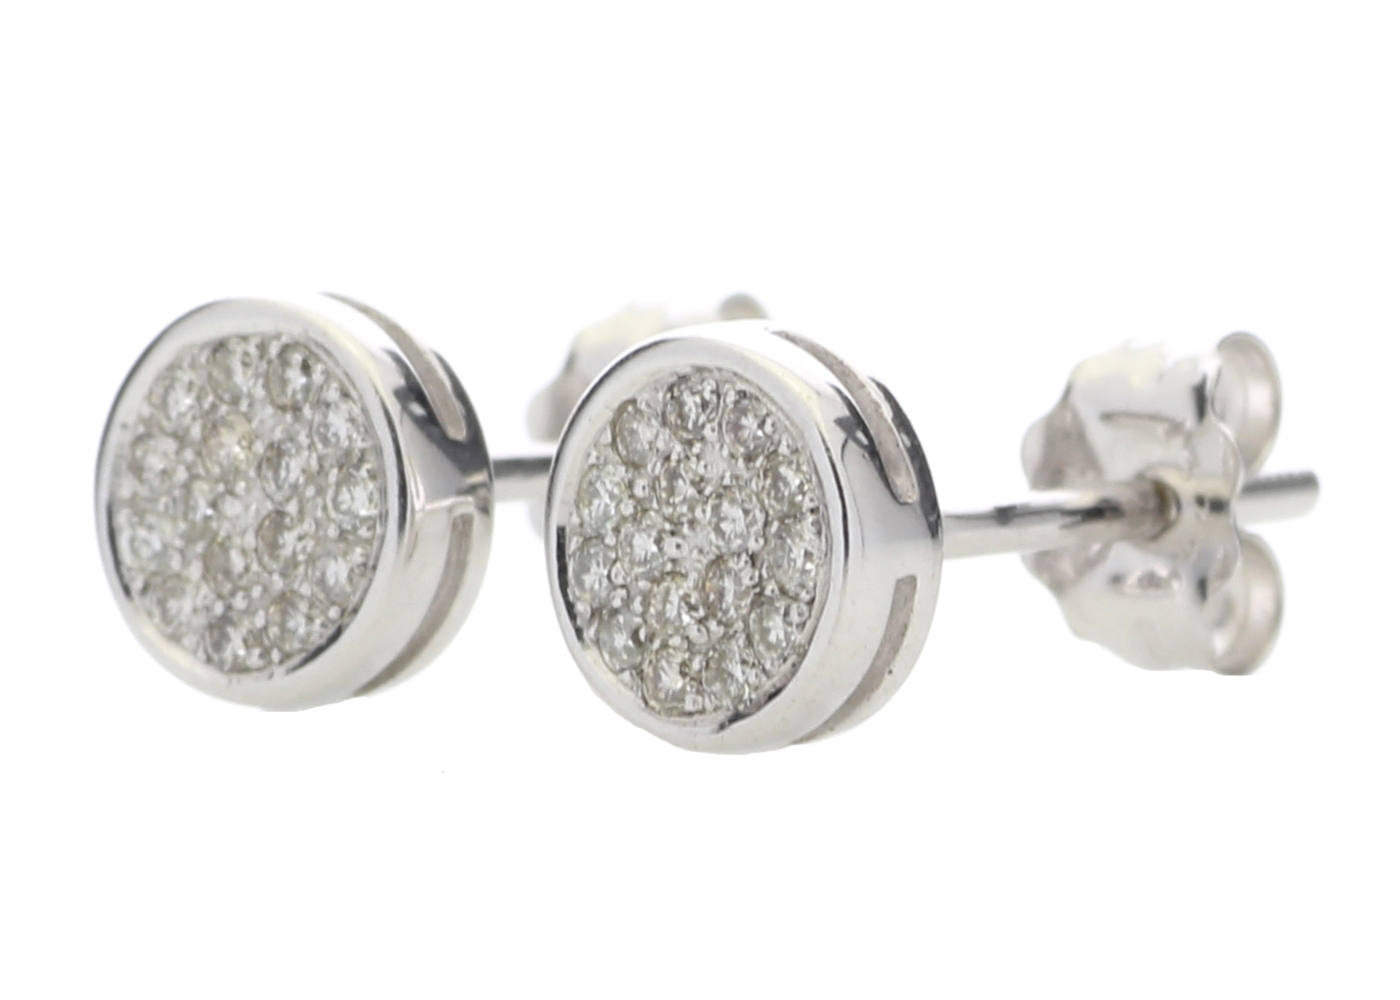 9ct White Gold Diamond Cluster Earring 0.16 Carats - Image 2 of 4